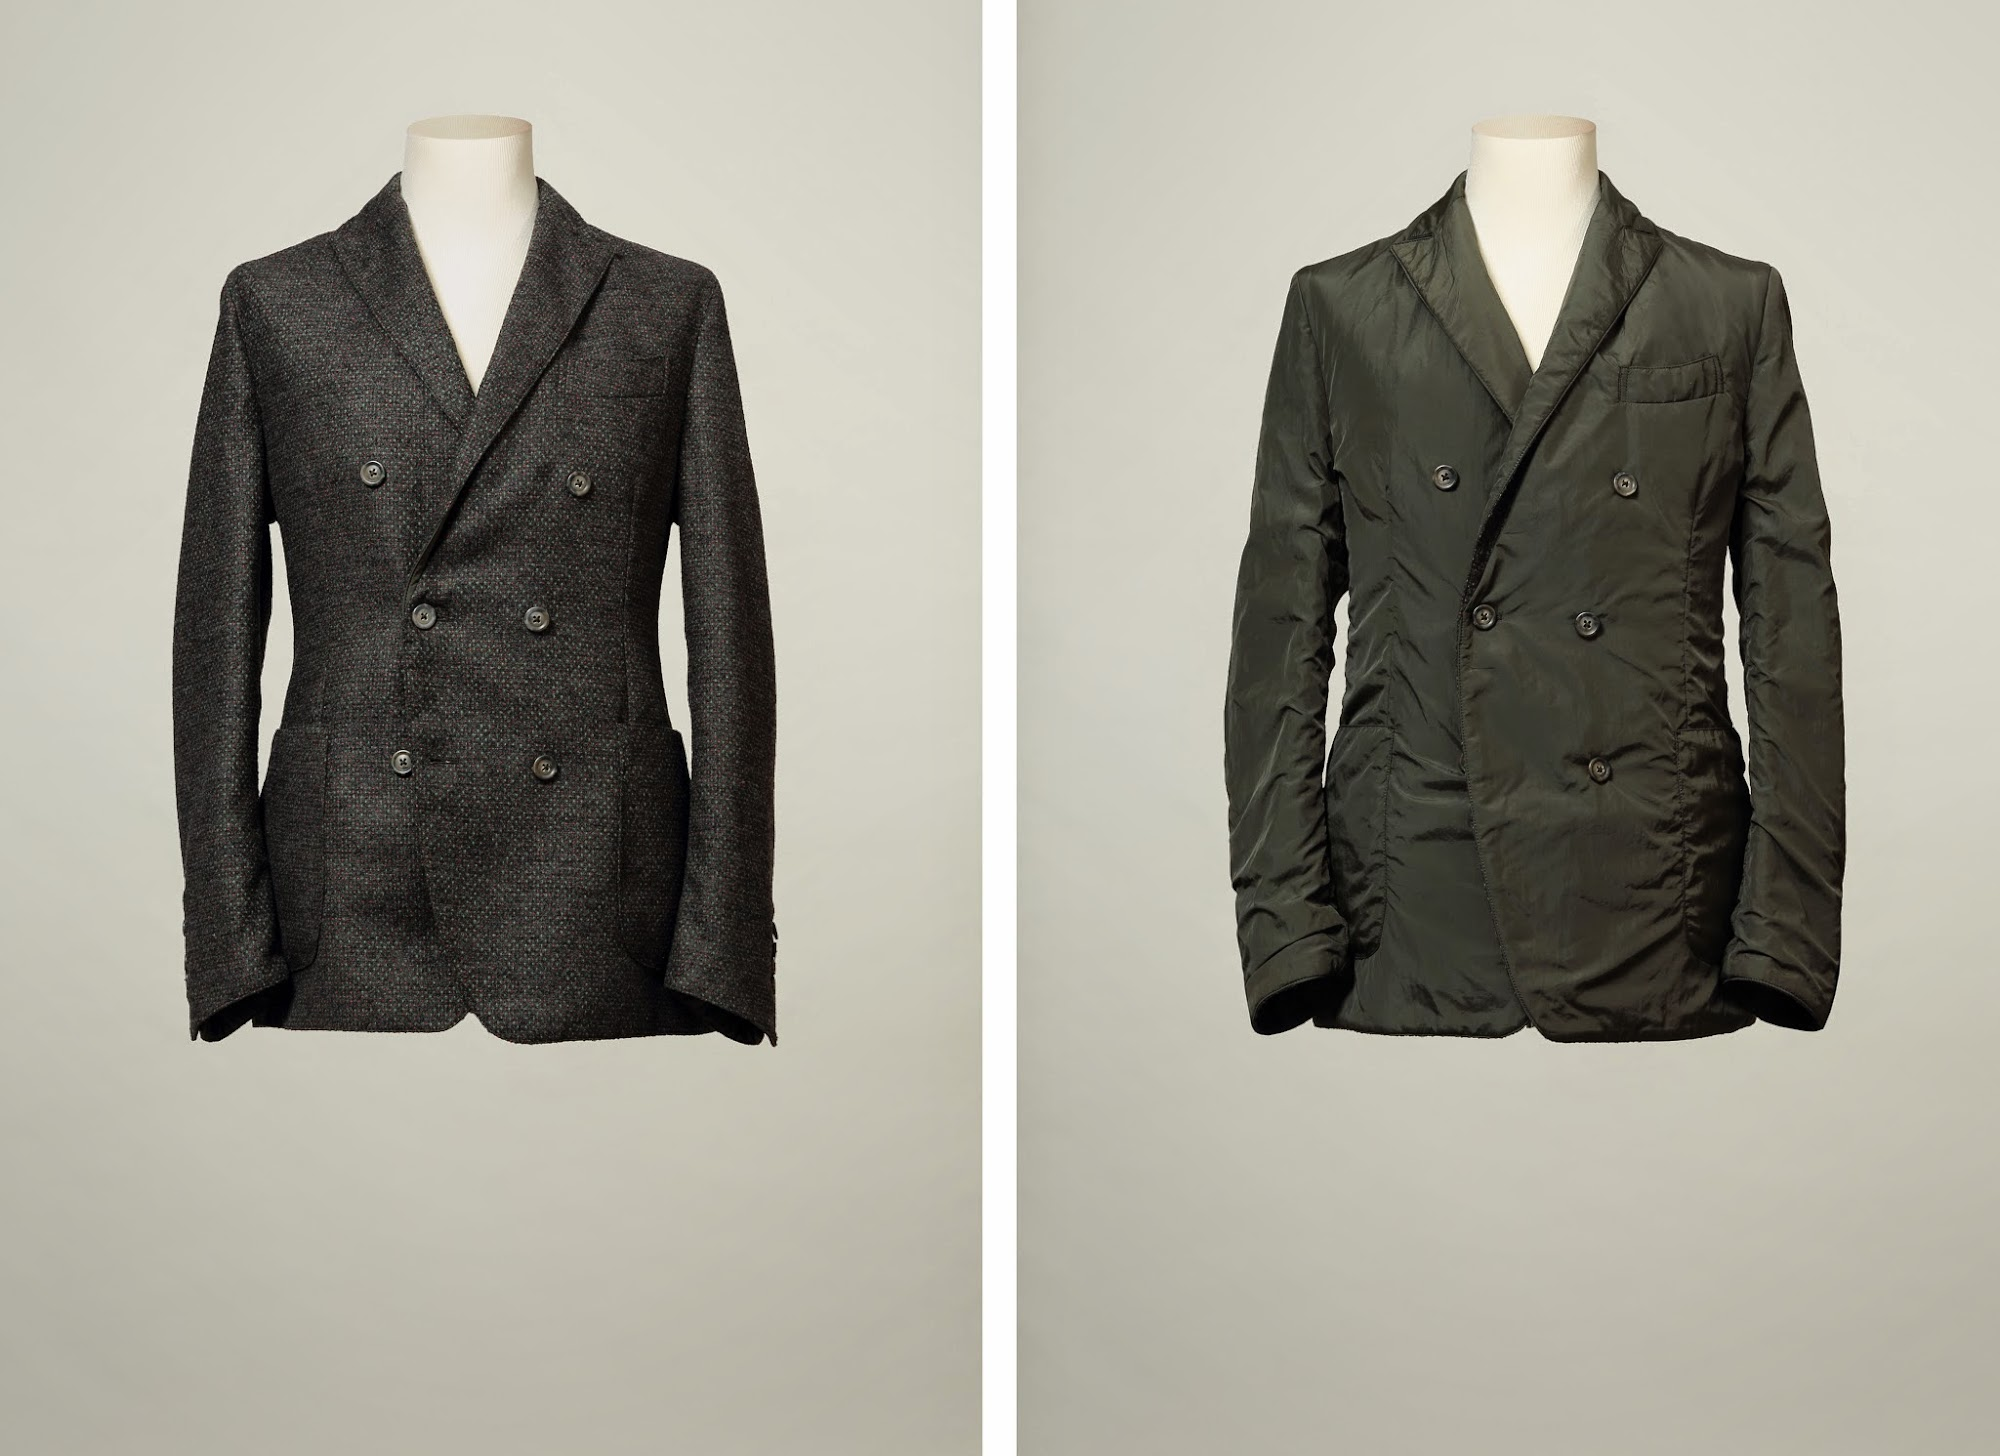 Dude Reviewed: Lardini A/W 14/15